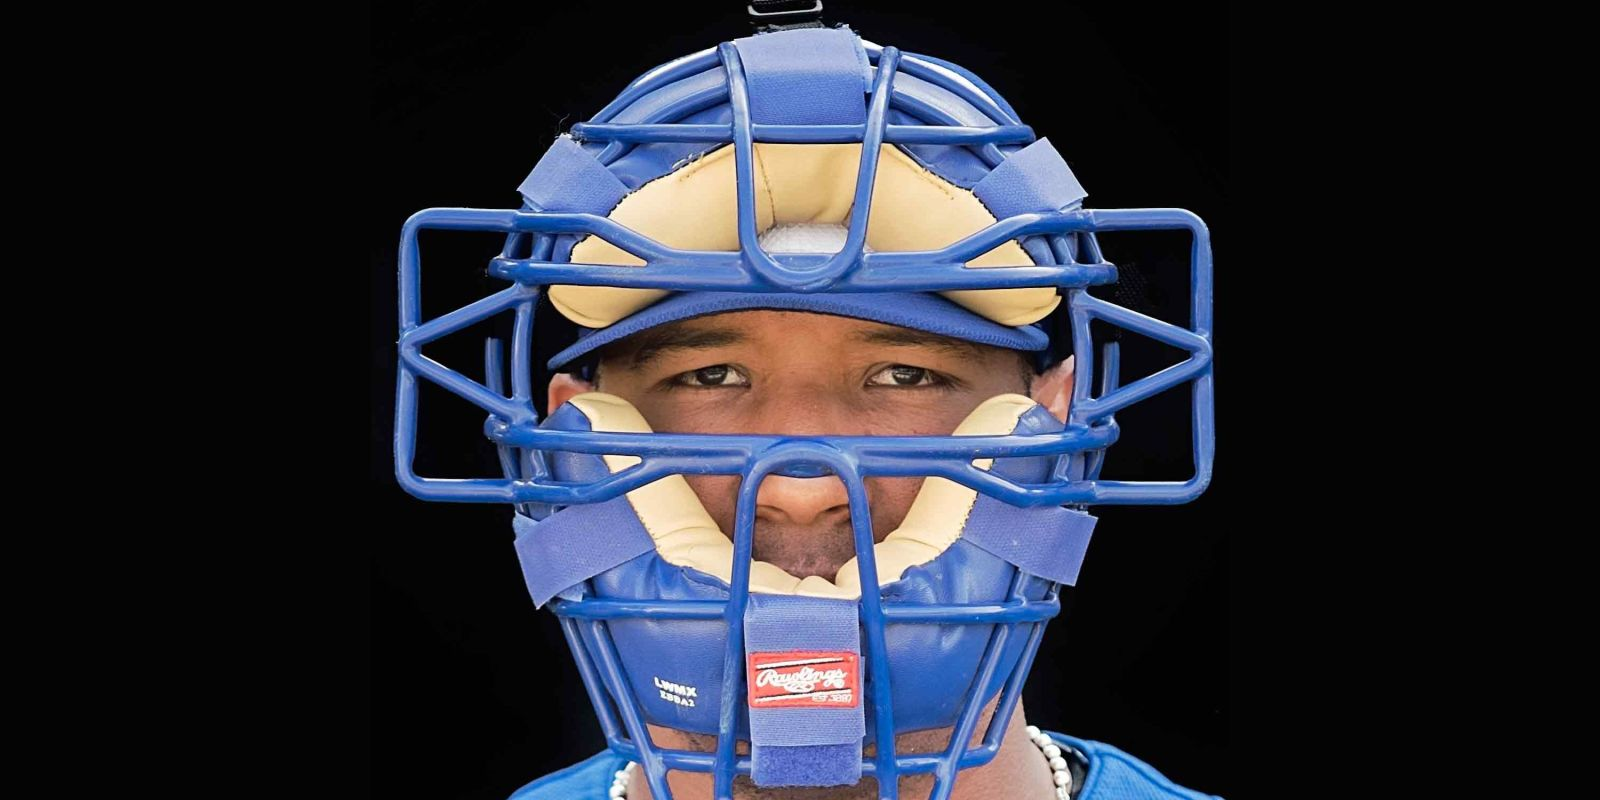 Rawlings Catchers Gear Salvador Perez